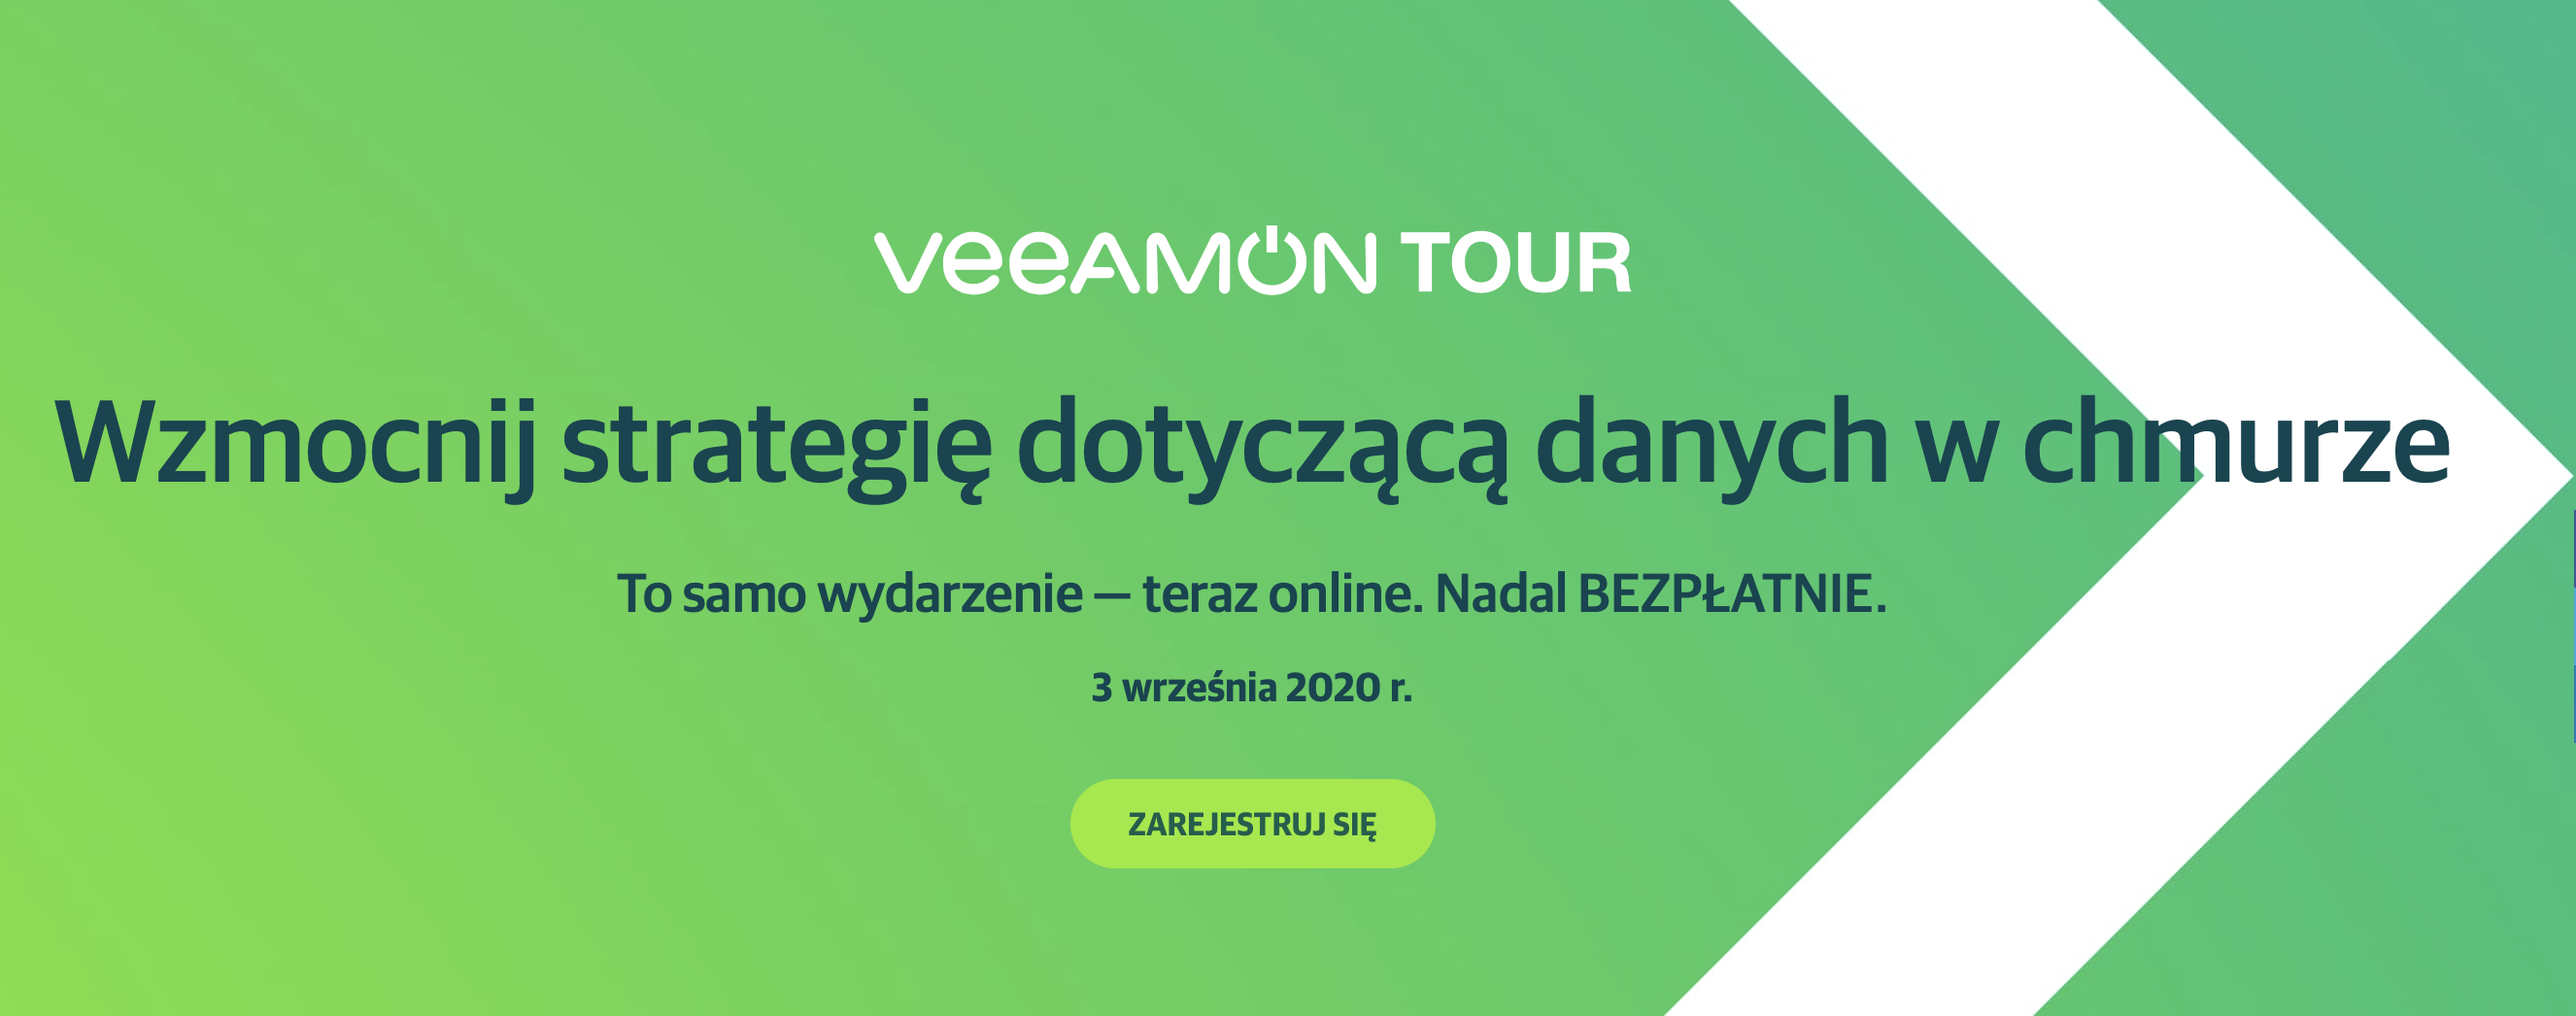 Veeam on tour Poland